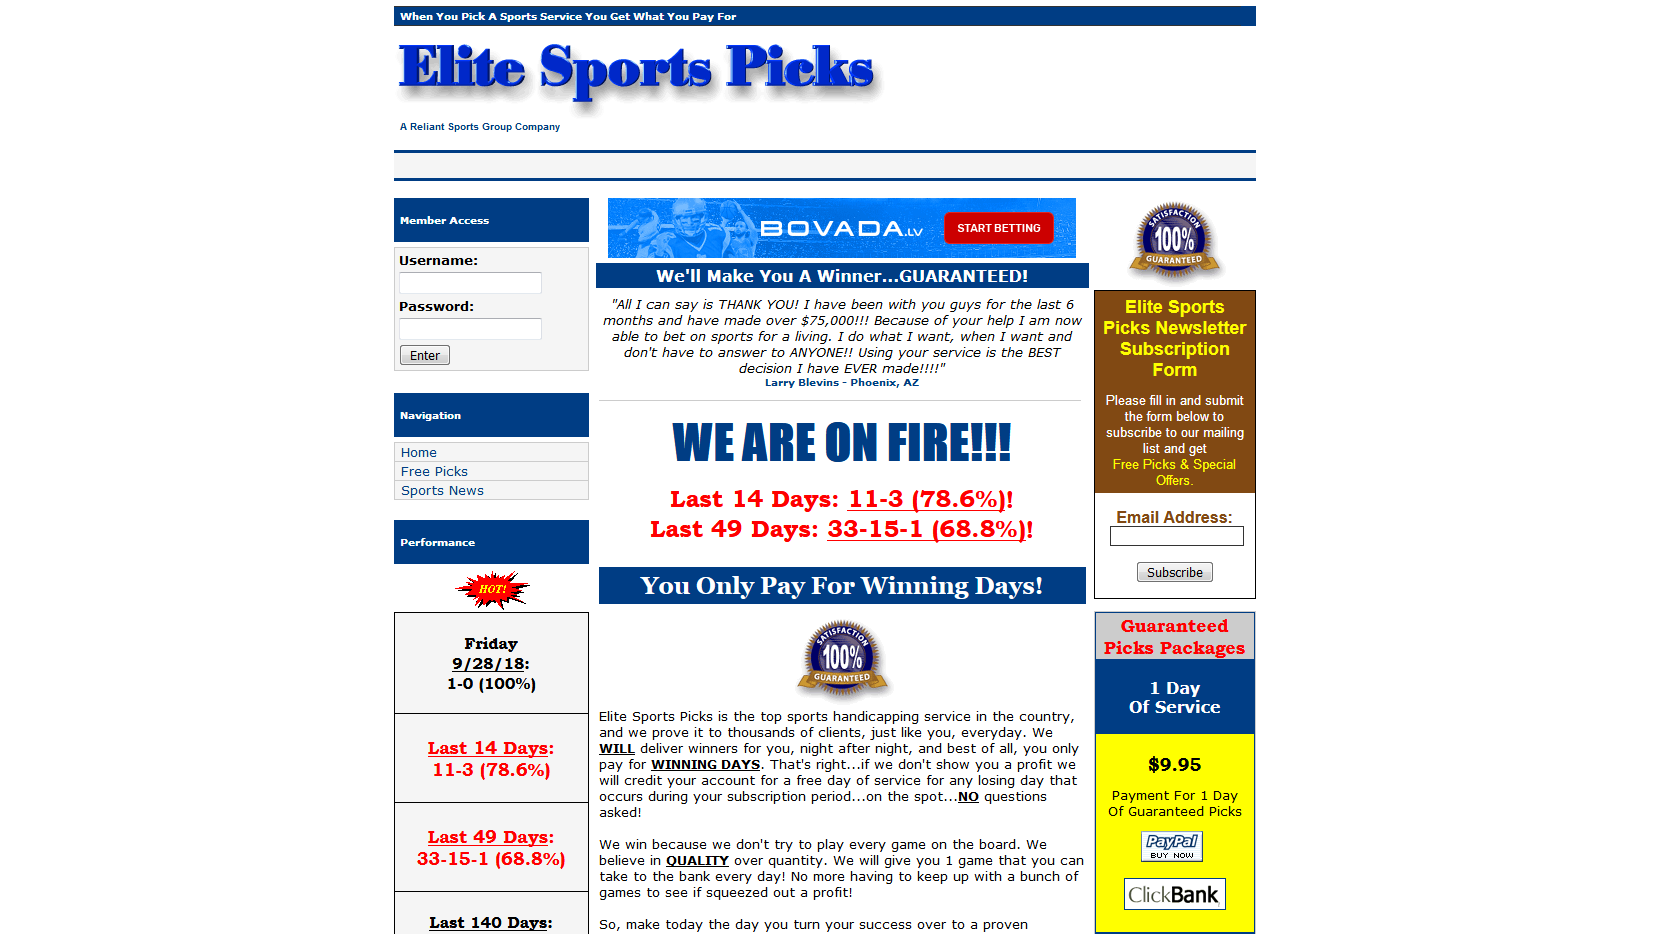 Elite Sports Picks